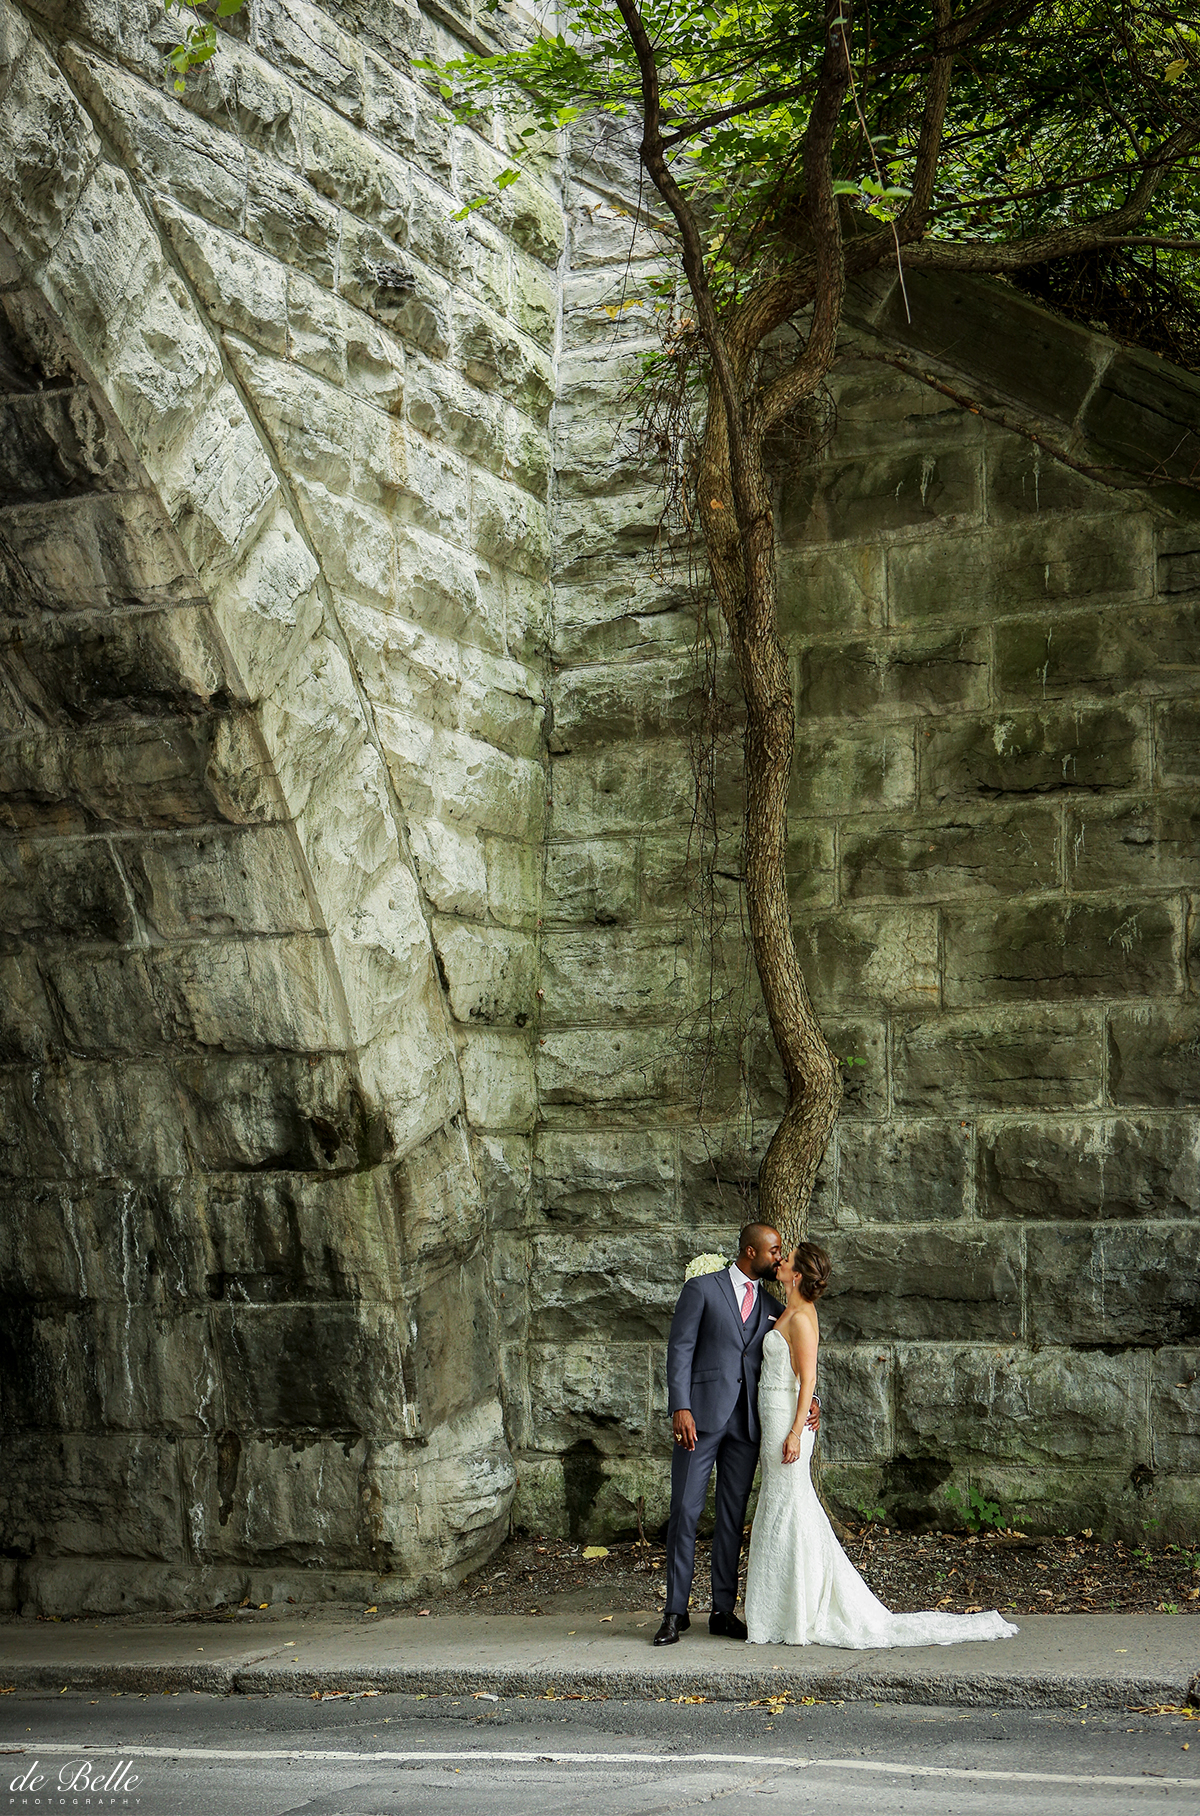 Montreal-Wedding-Photographer-Debelle-LD15